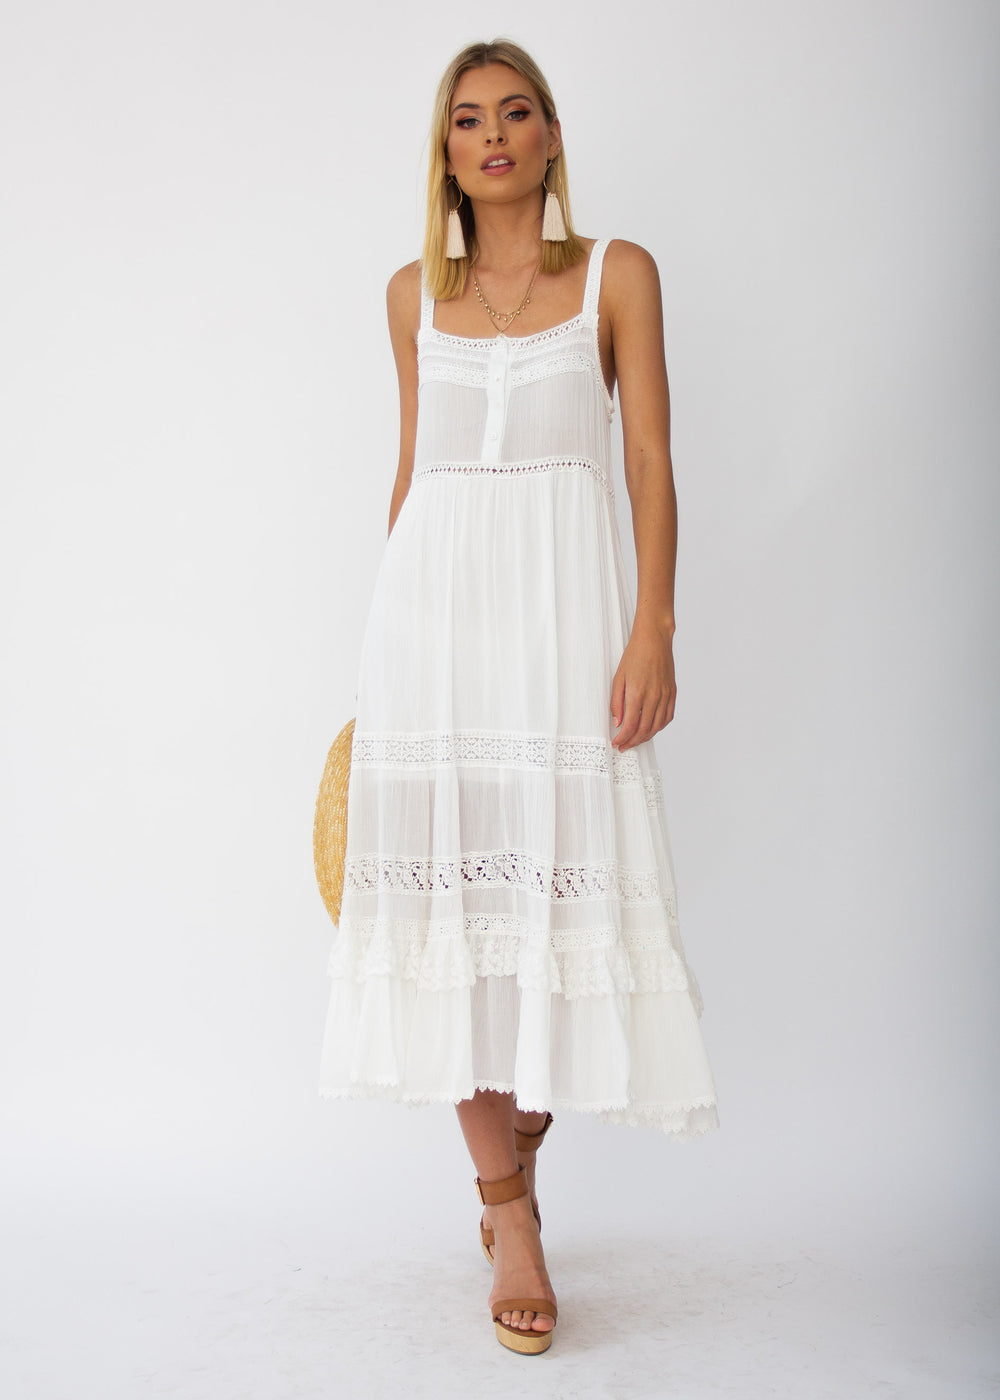 Baja Swing Midi Dress - White